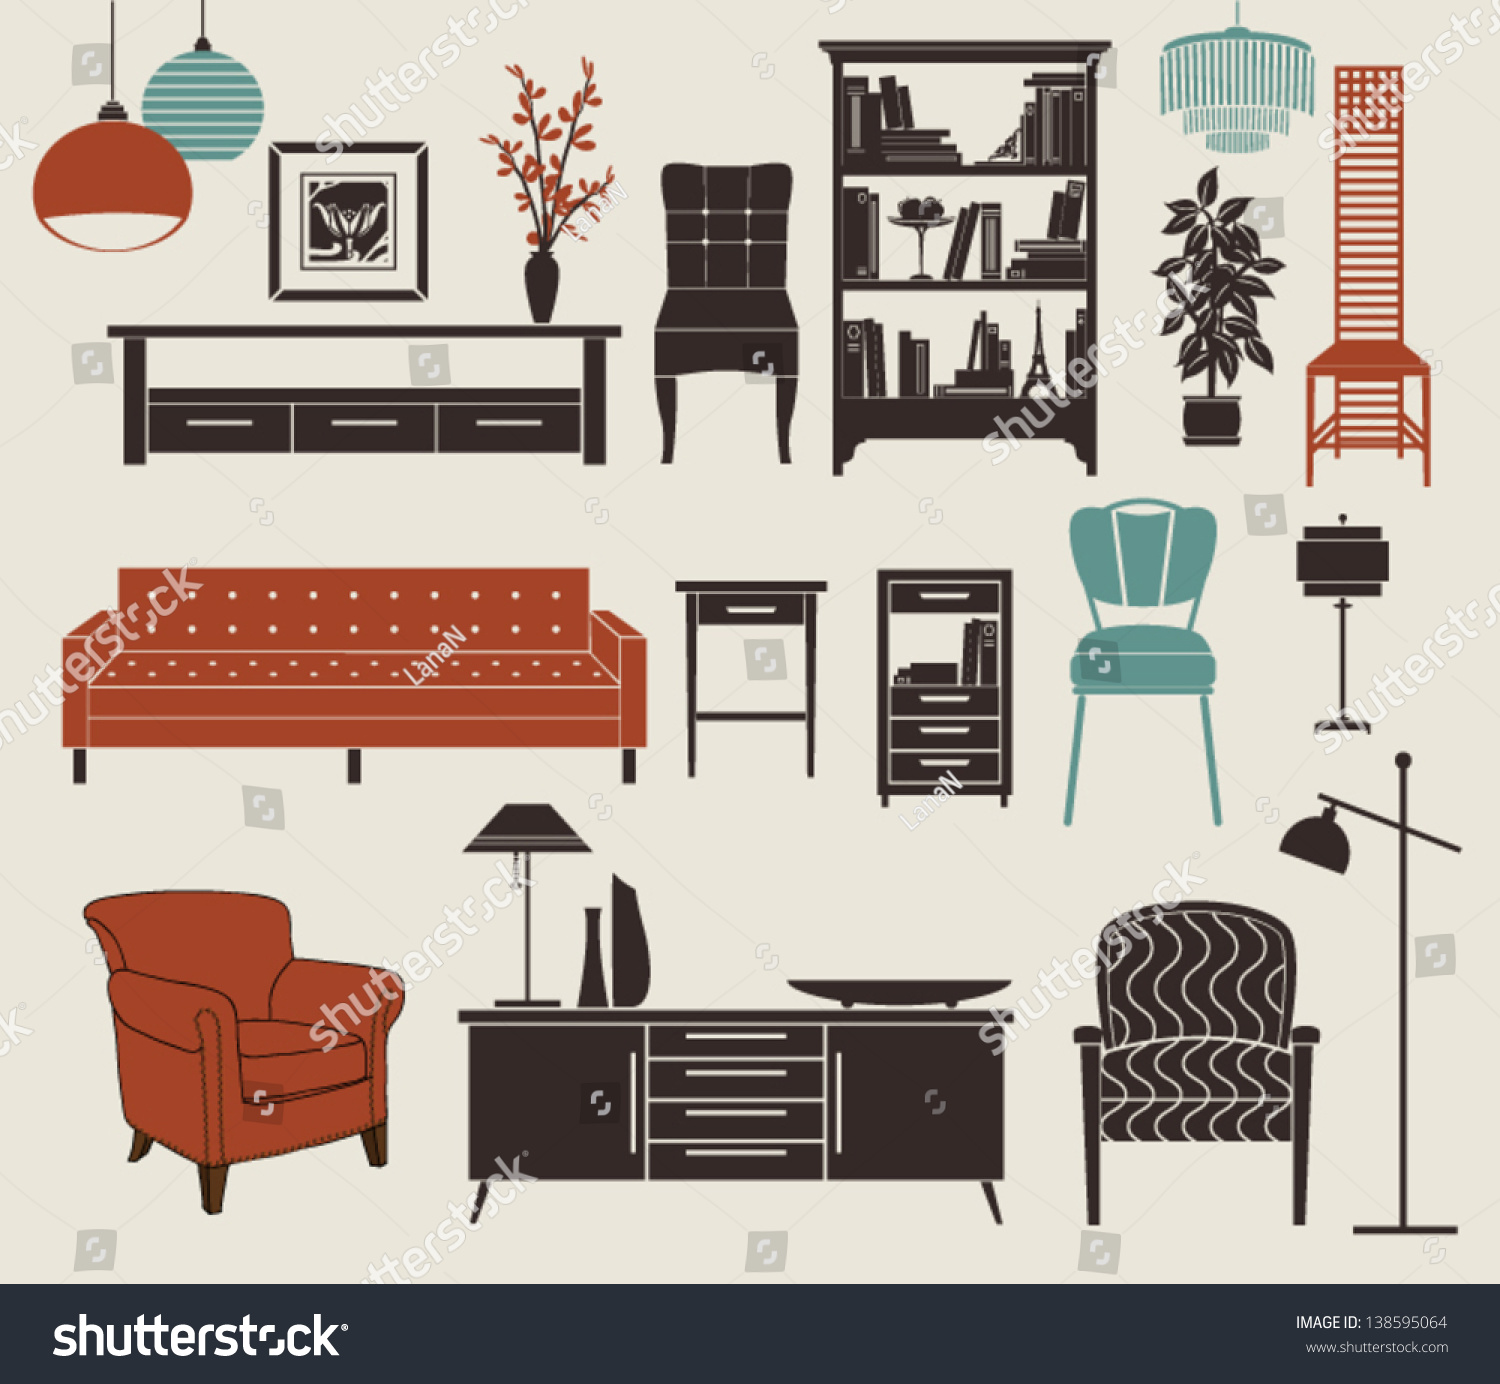 Furniture Home Accessories Set Design Elements Stock